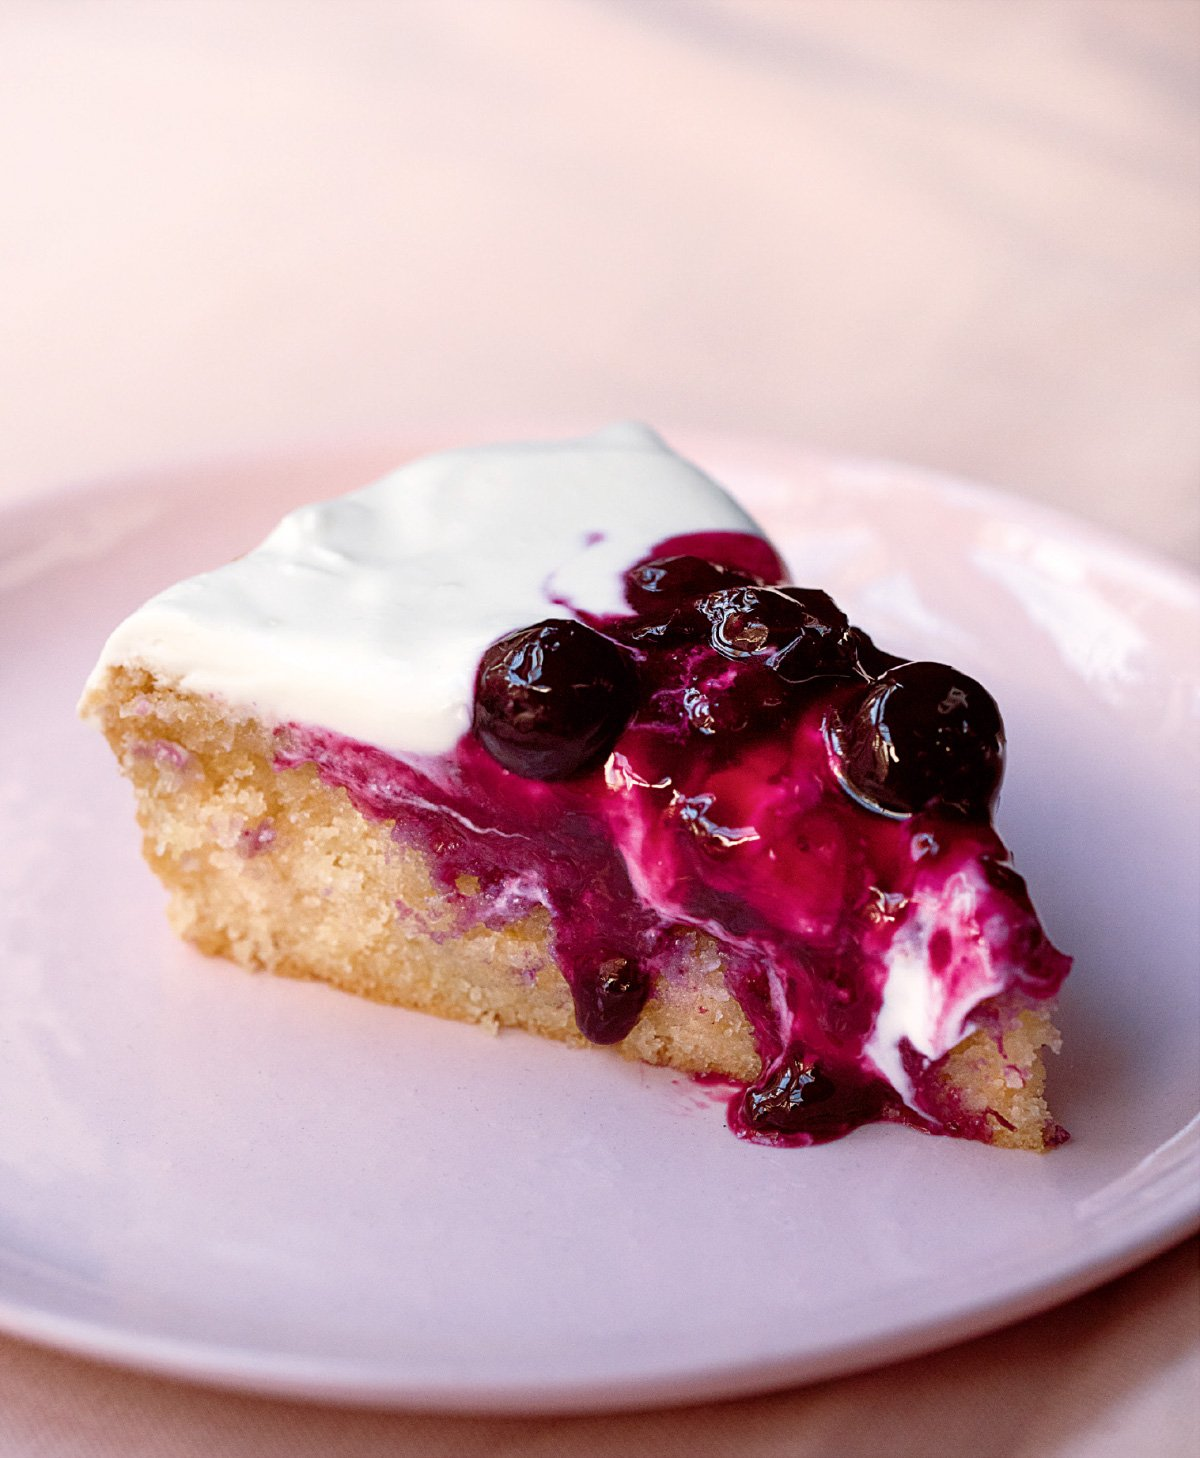 Lemon Tender Cake With Blueberry Compote